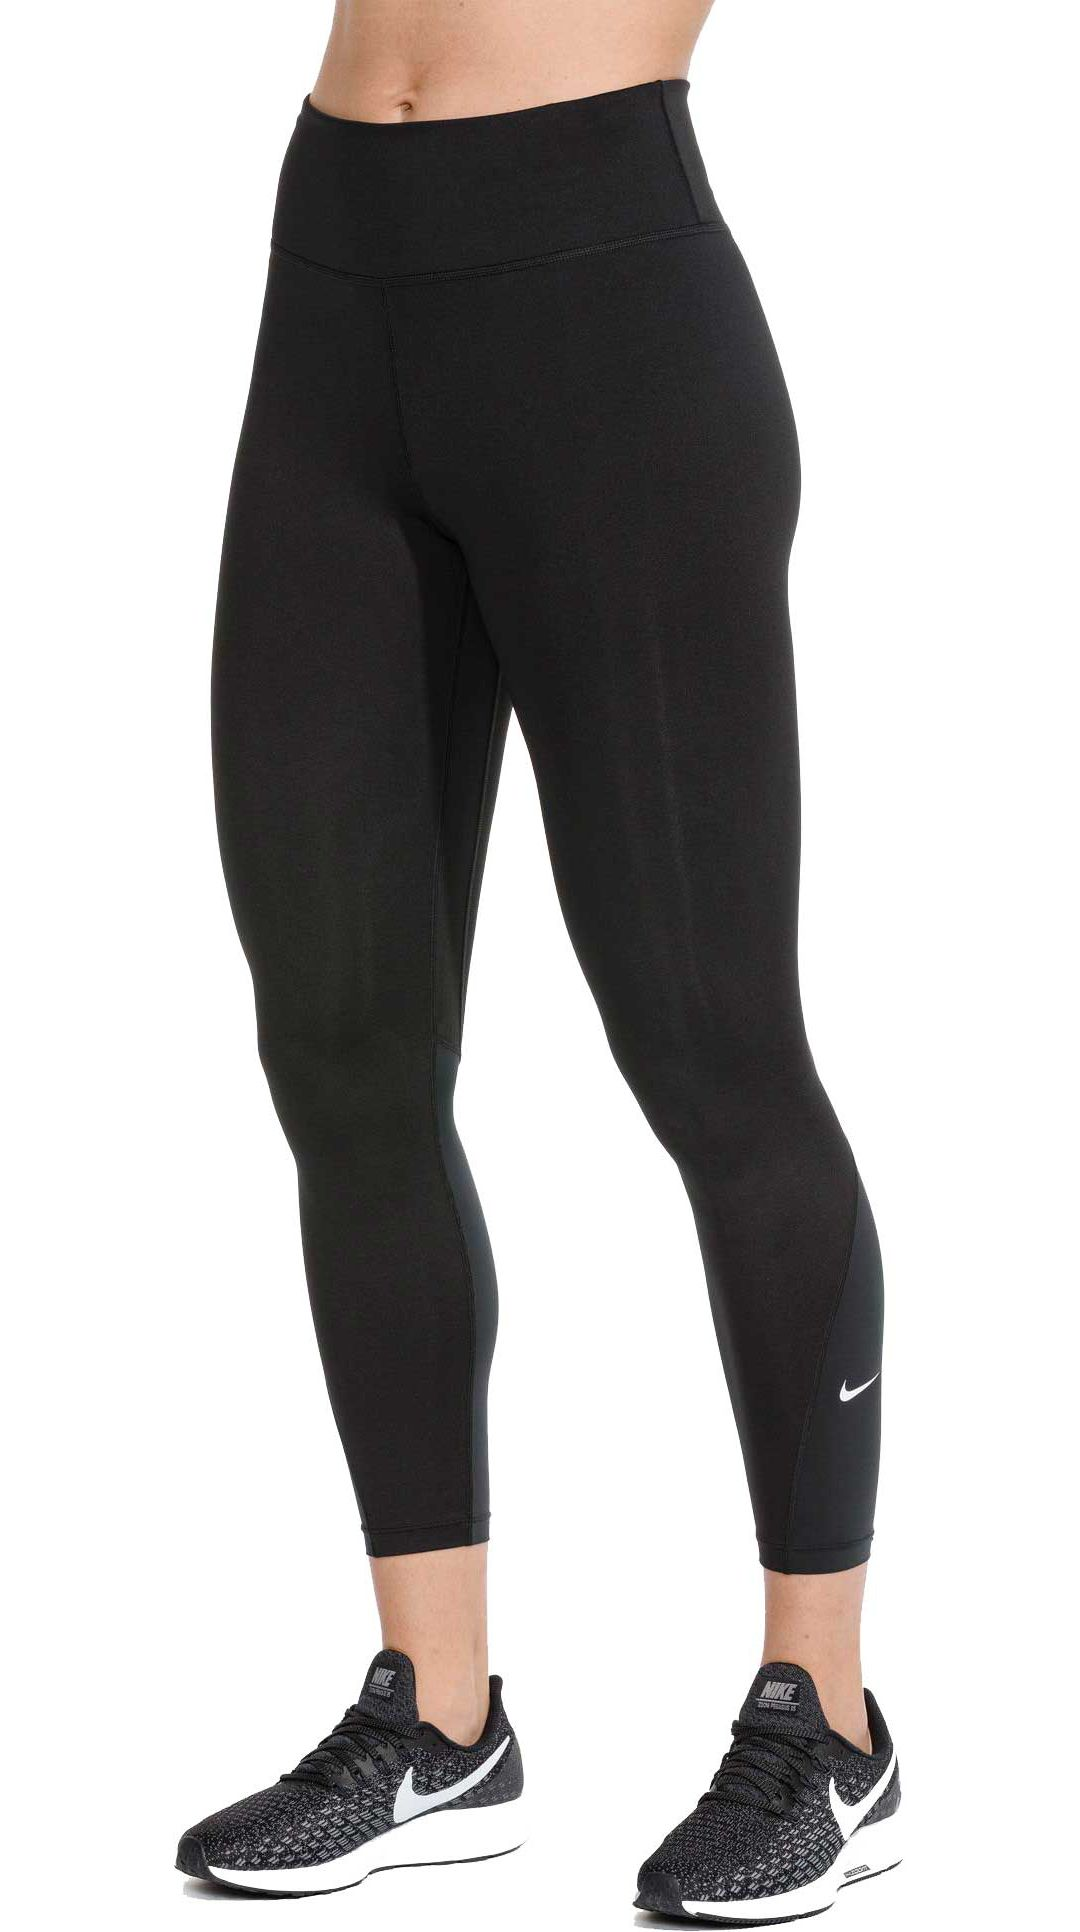 a0f346f15aa82 Nike One Women's 7/8 Tights | DICK'S Sporting Goods